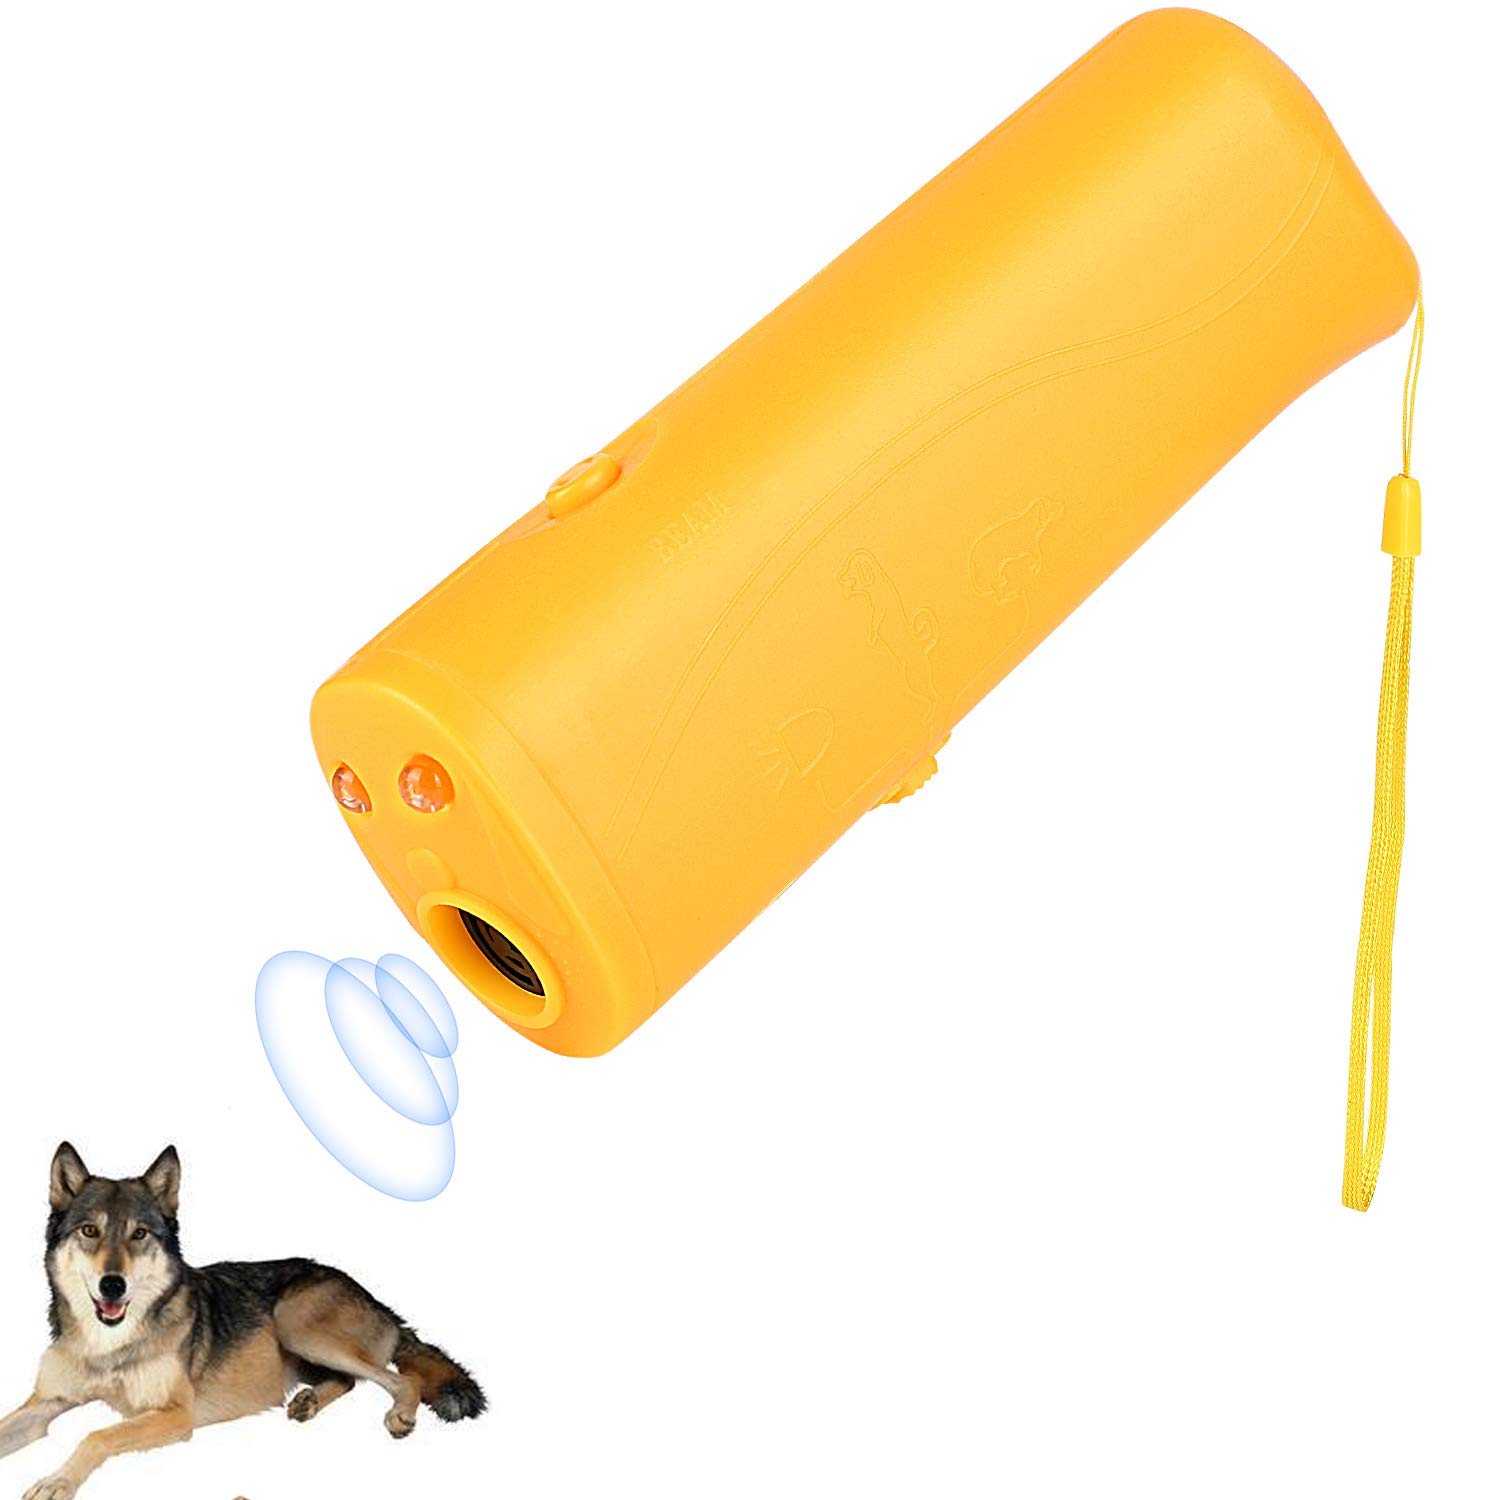 BAODATUI Anti Barking Stop Bark Handheld 3 in 1 Pet LED Ultrasonic Dog Repelle